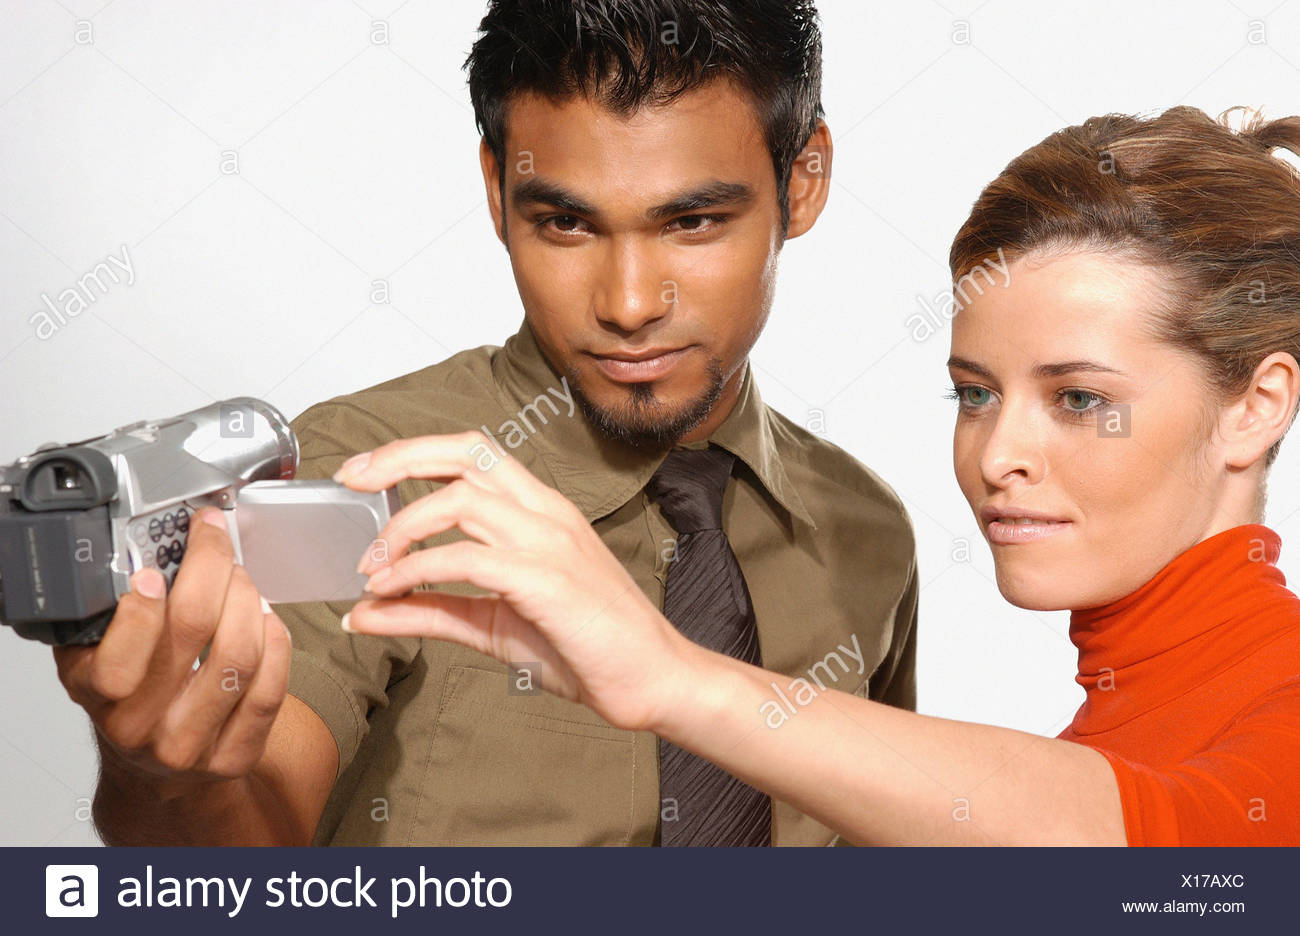 People using video camera - Stock Image